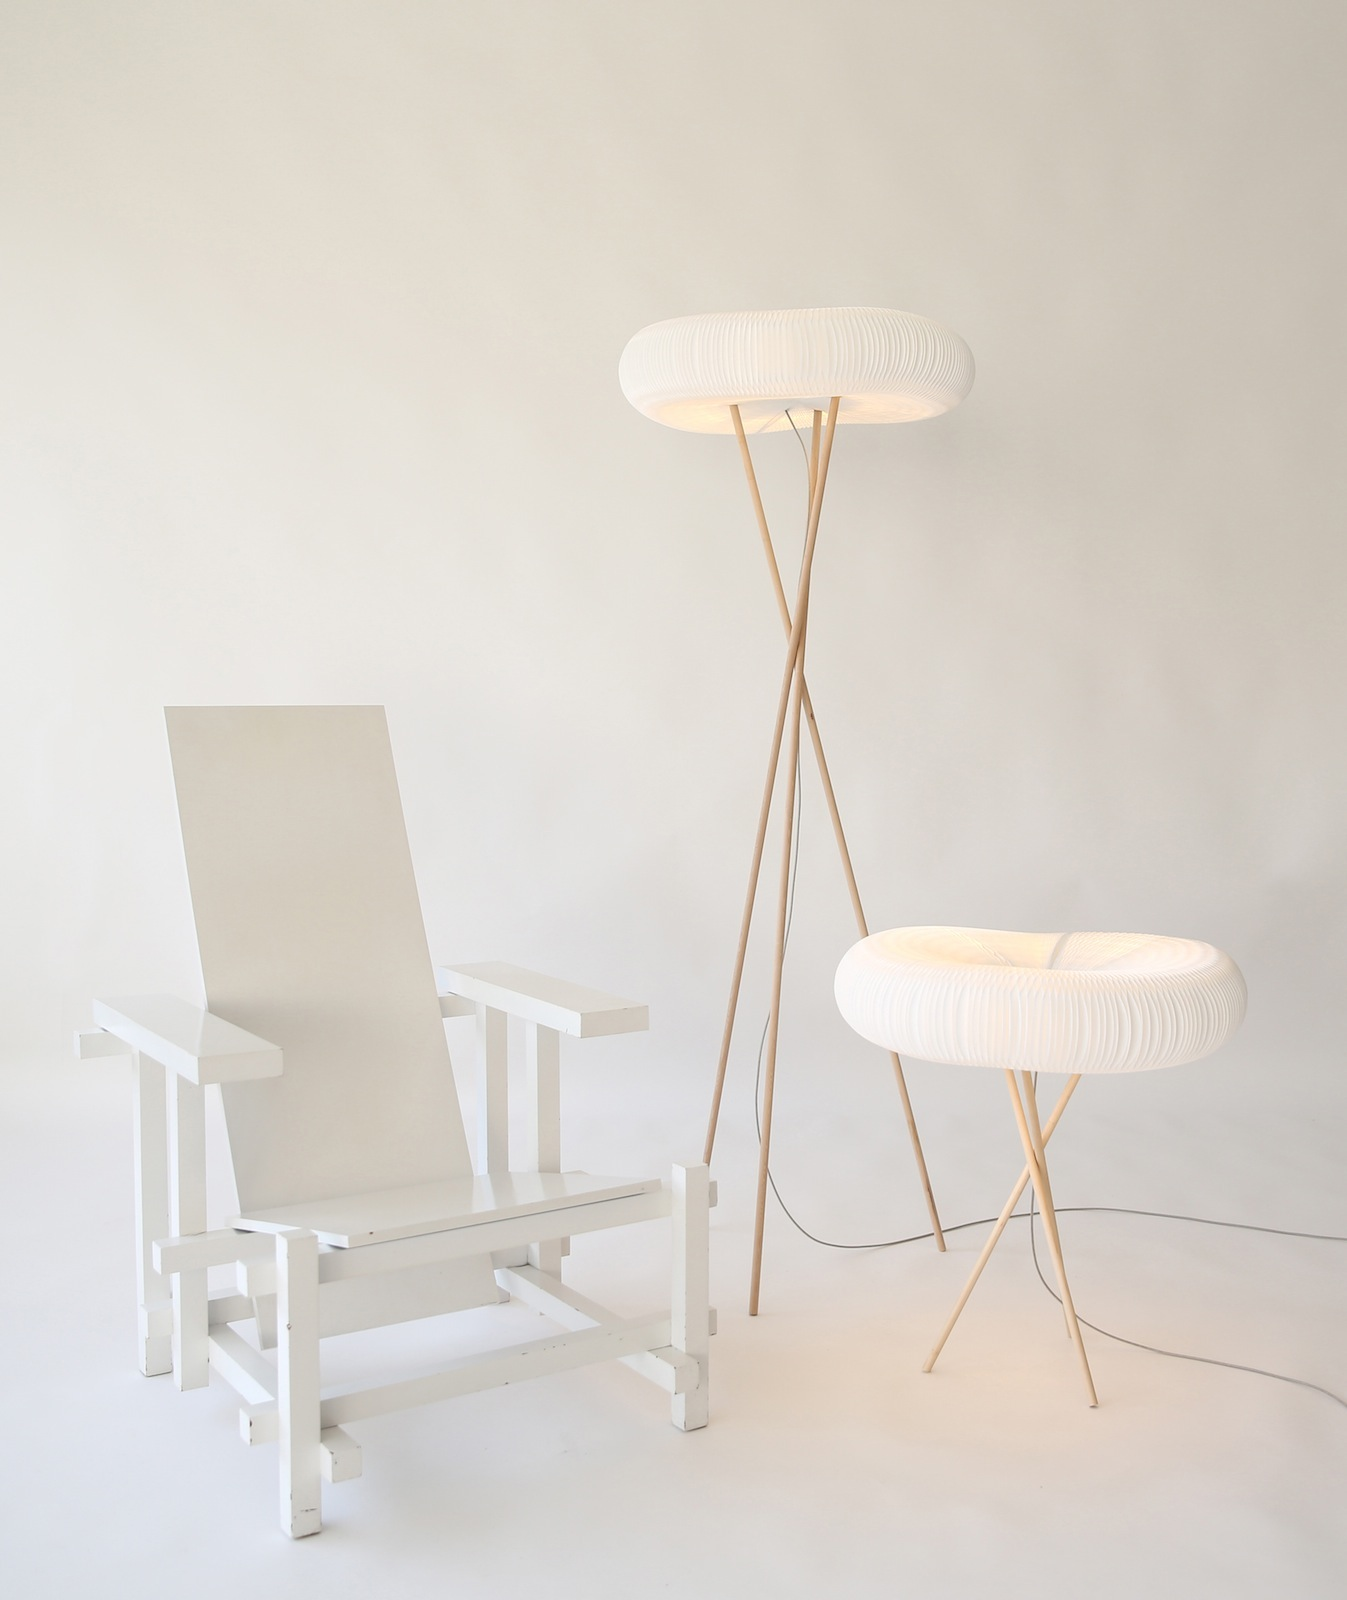 molo lamp with chair